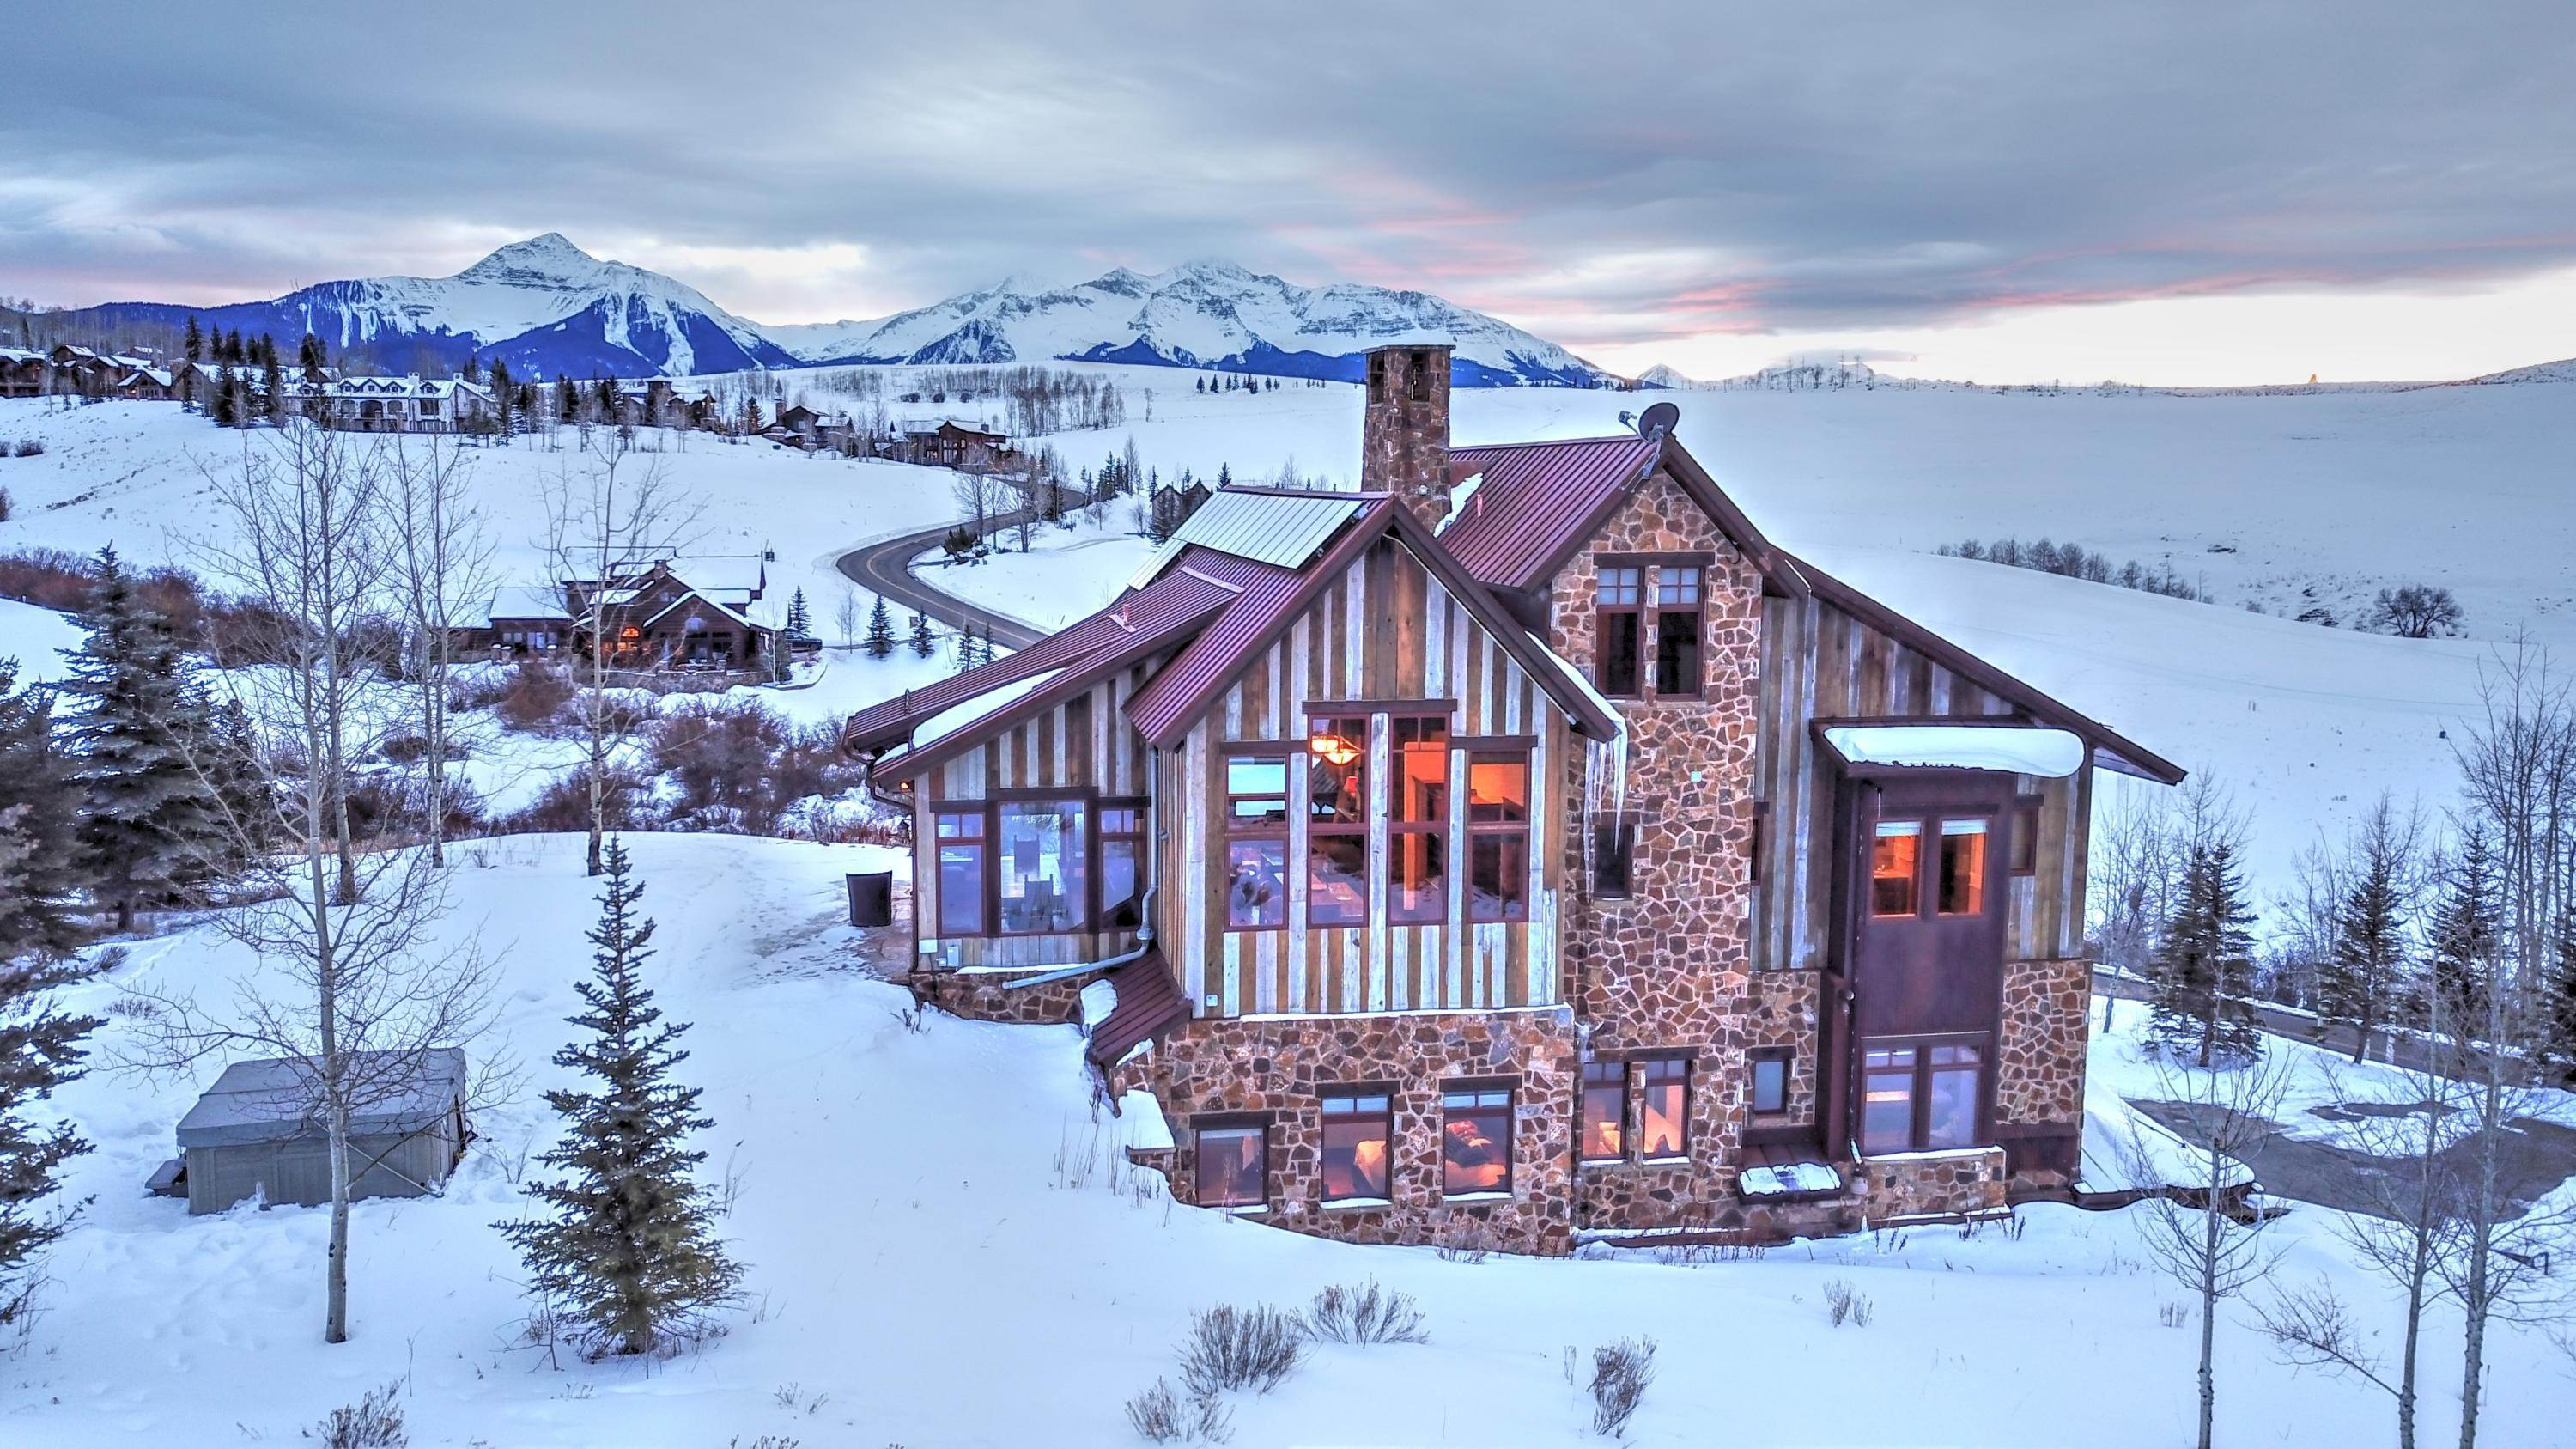 Single Family Home for Sale at 172 Adams Ranch Road Mountain Village, Colorado,81435 United States